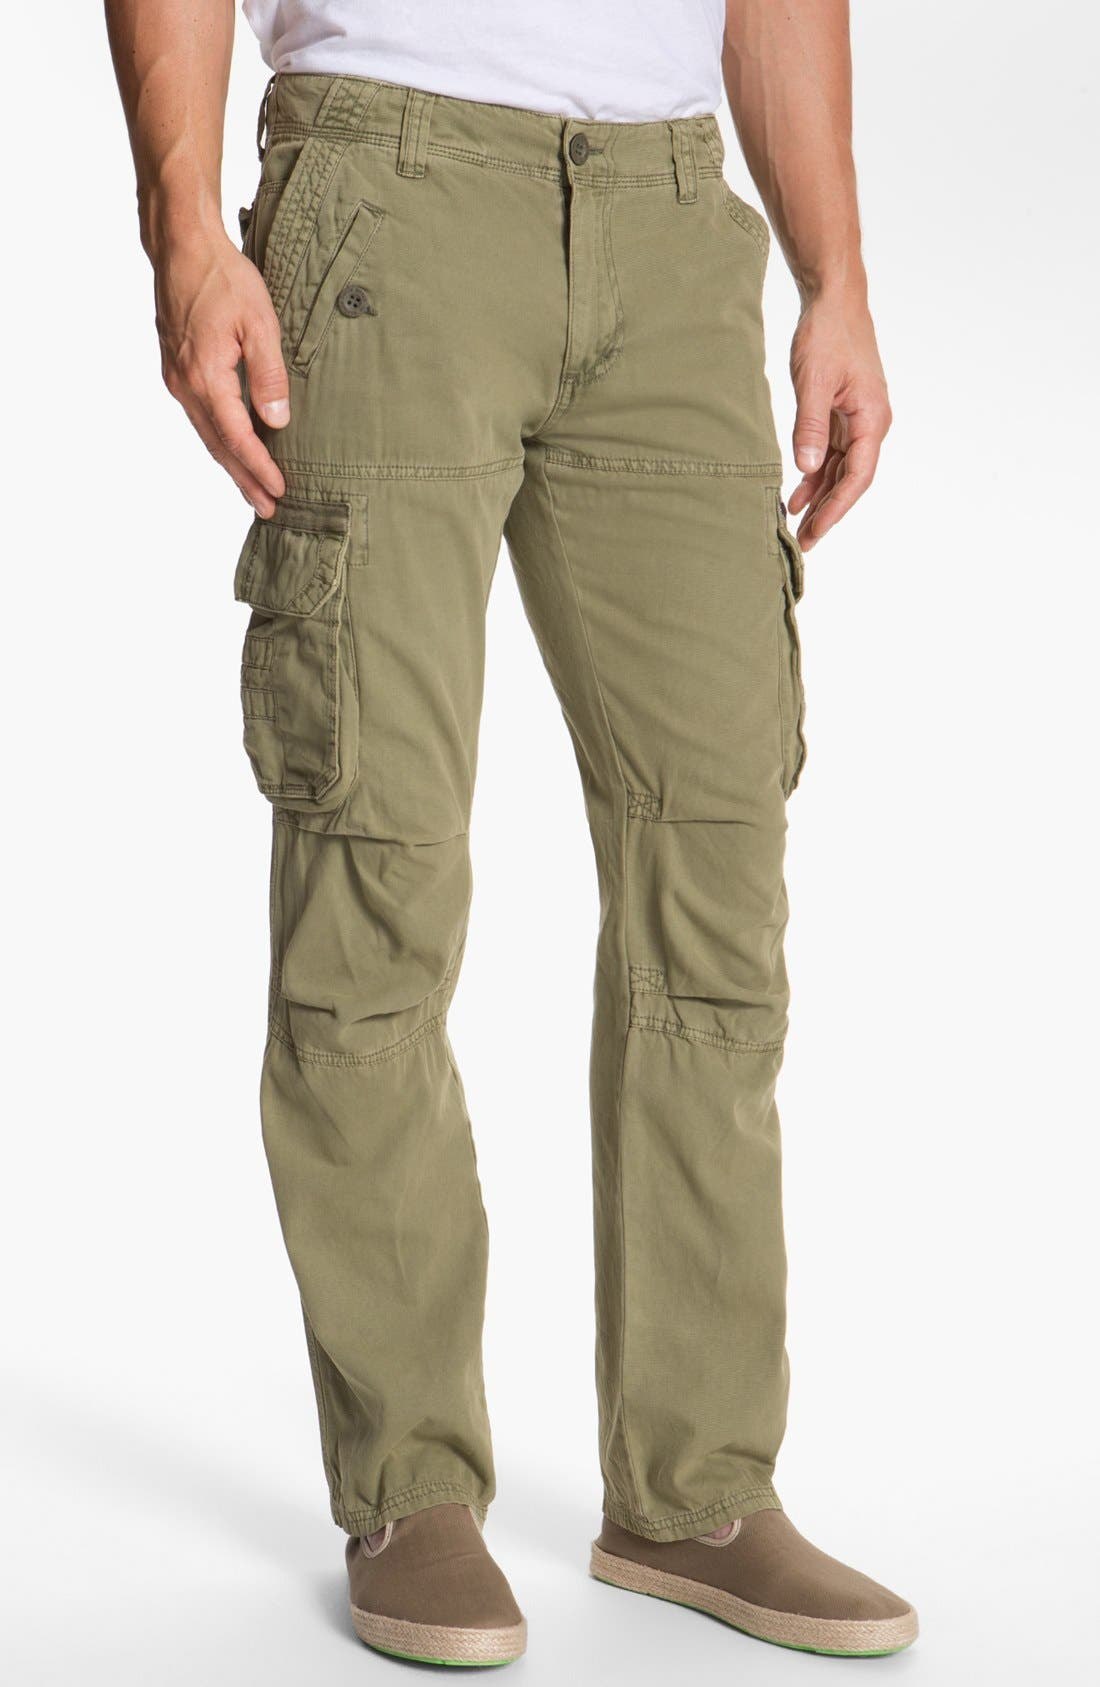 Alternate Image 1 Selected - Buffalo Jeans 'Frank' Cargo Pants